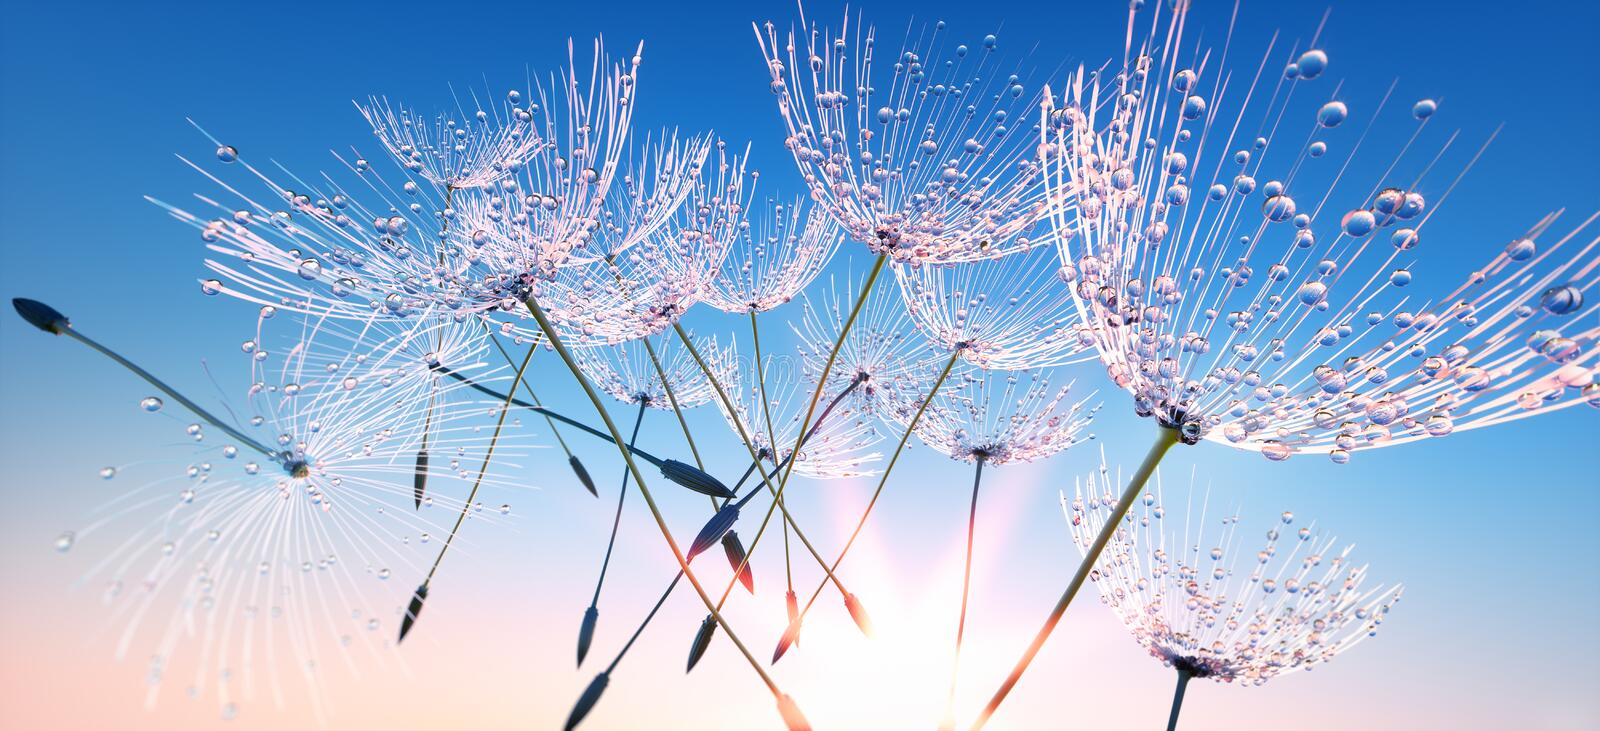 Some dandelion seeds with dew drops flying away. Some dandelion seed with dew drops in the air in the evenings against a clear blue sky royalty free stock photo